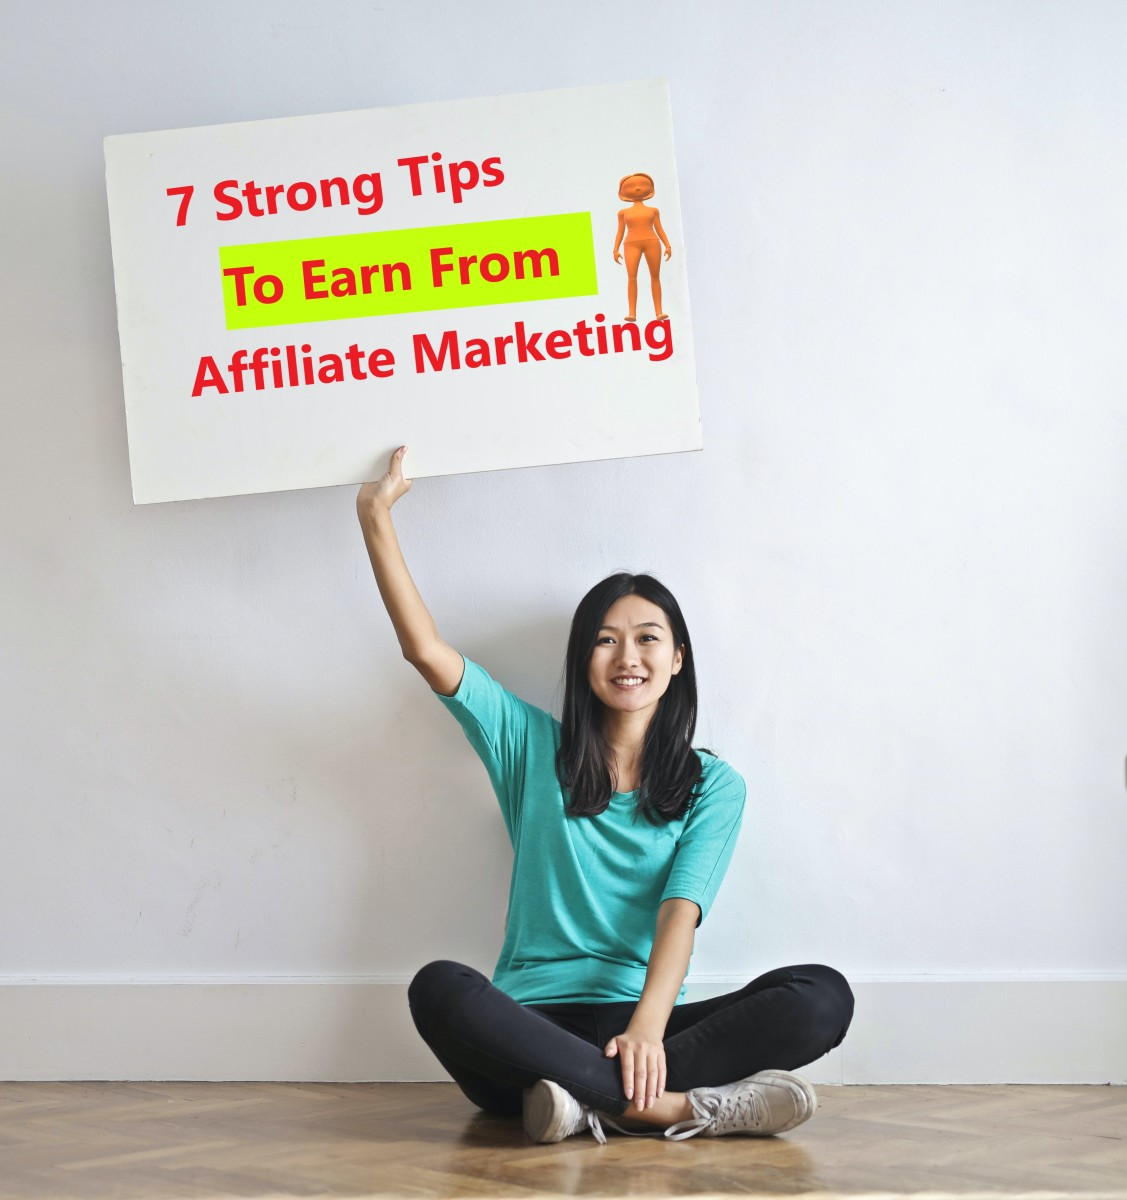 7 Strong Tips to Earn From Affiliate Marketing